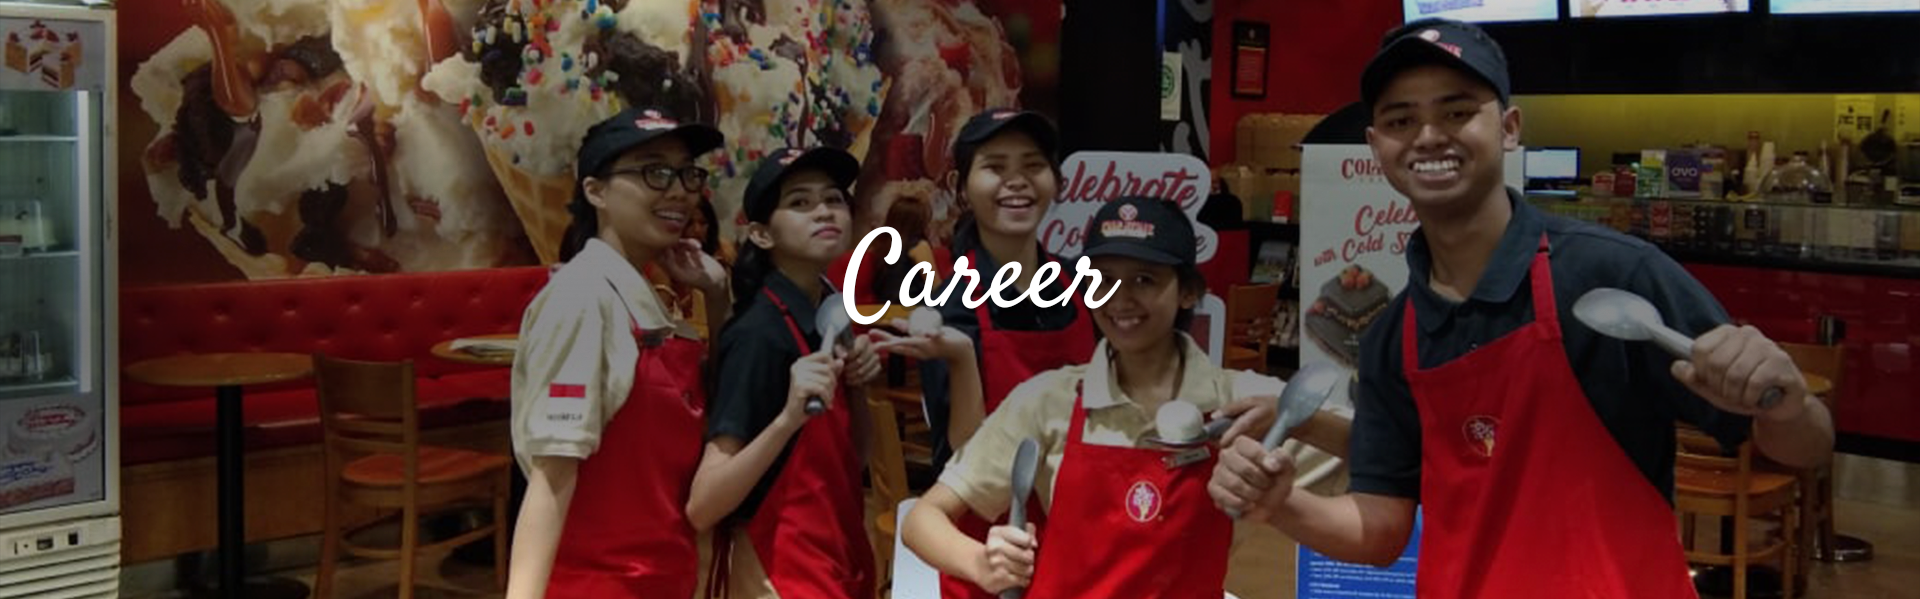 Career At Cold Stone Creamery Indonesia